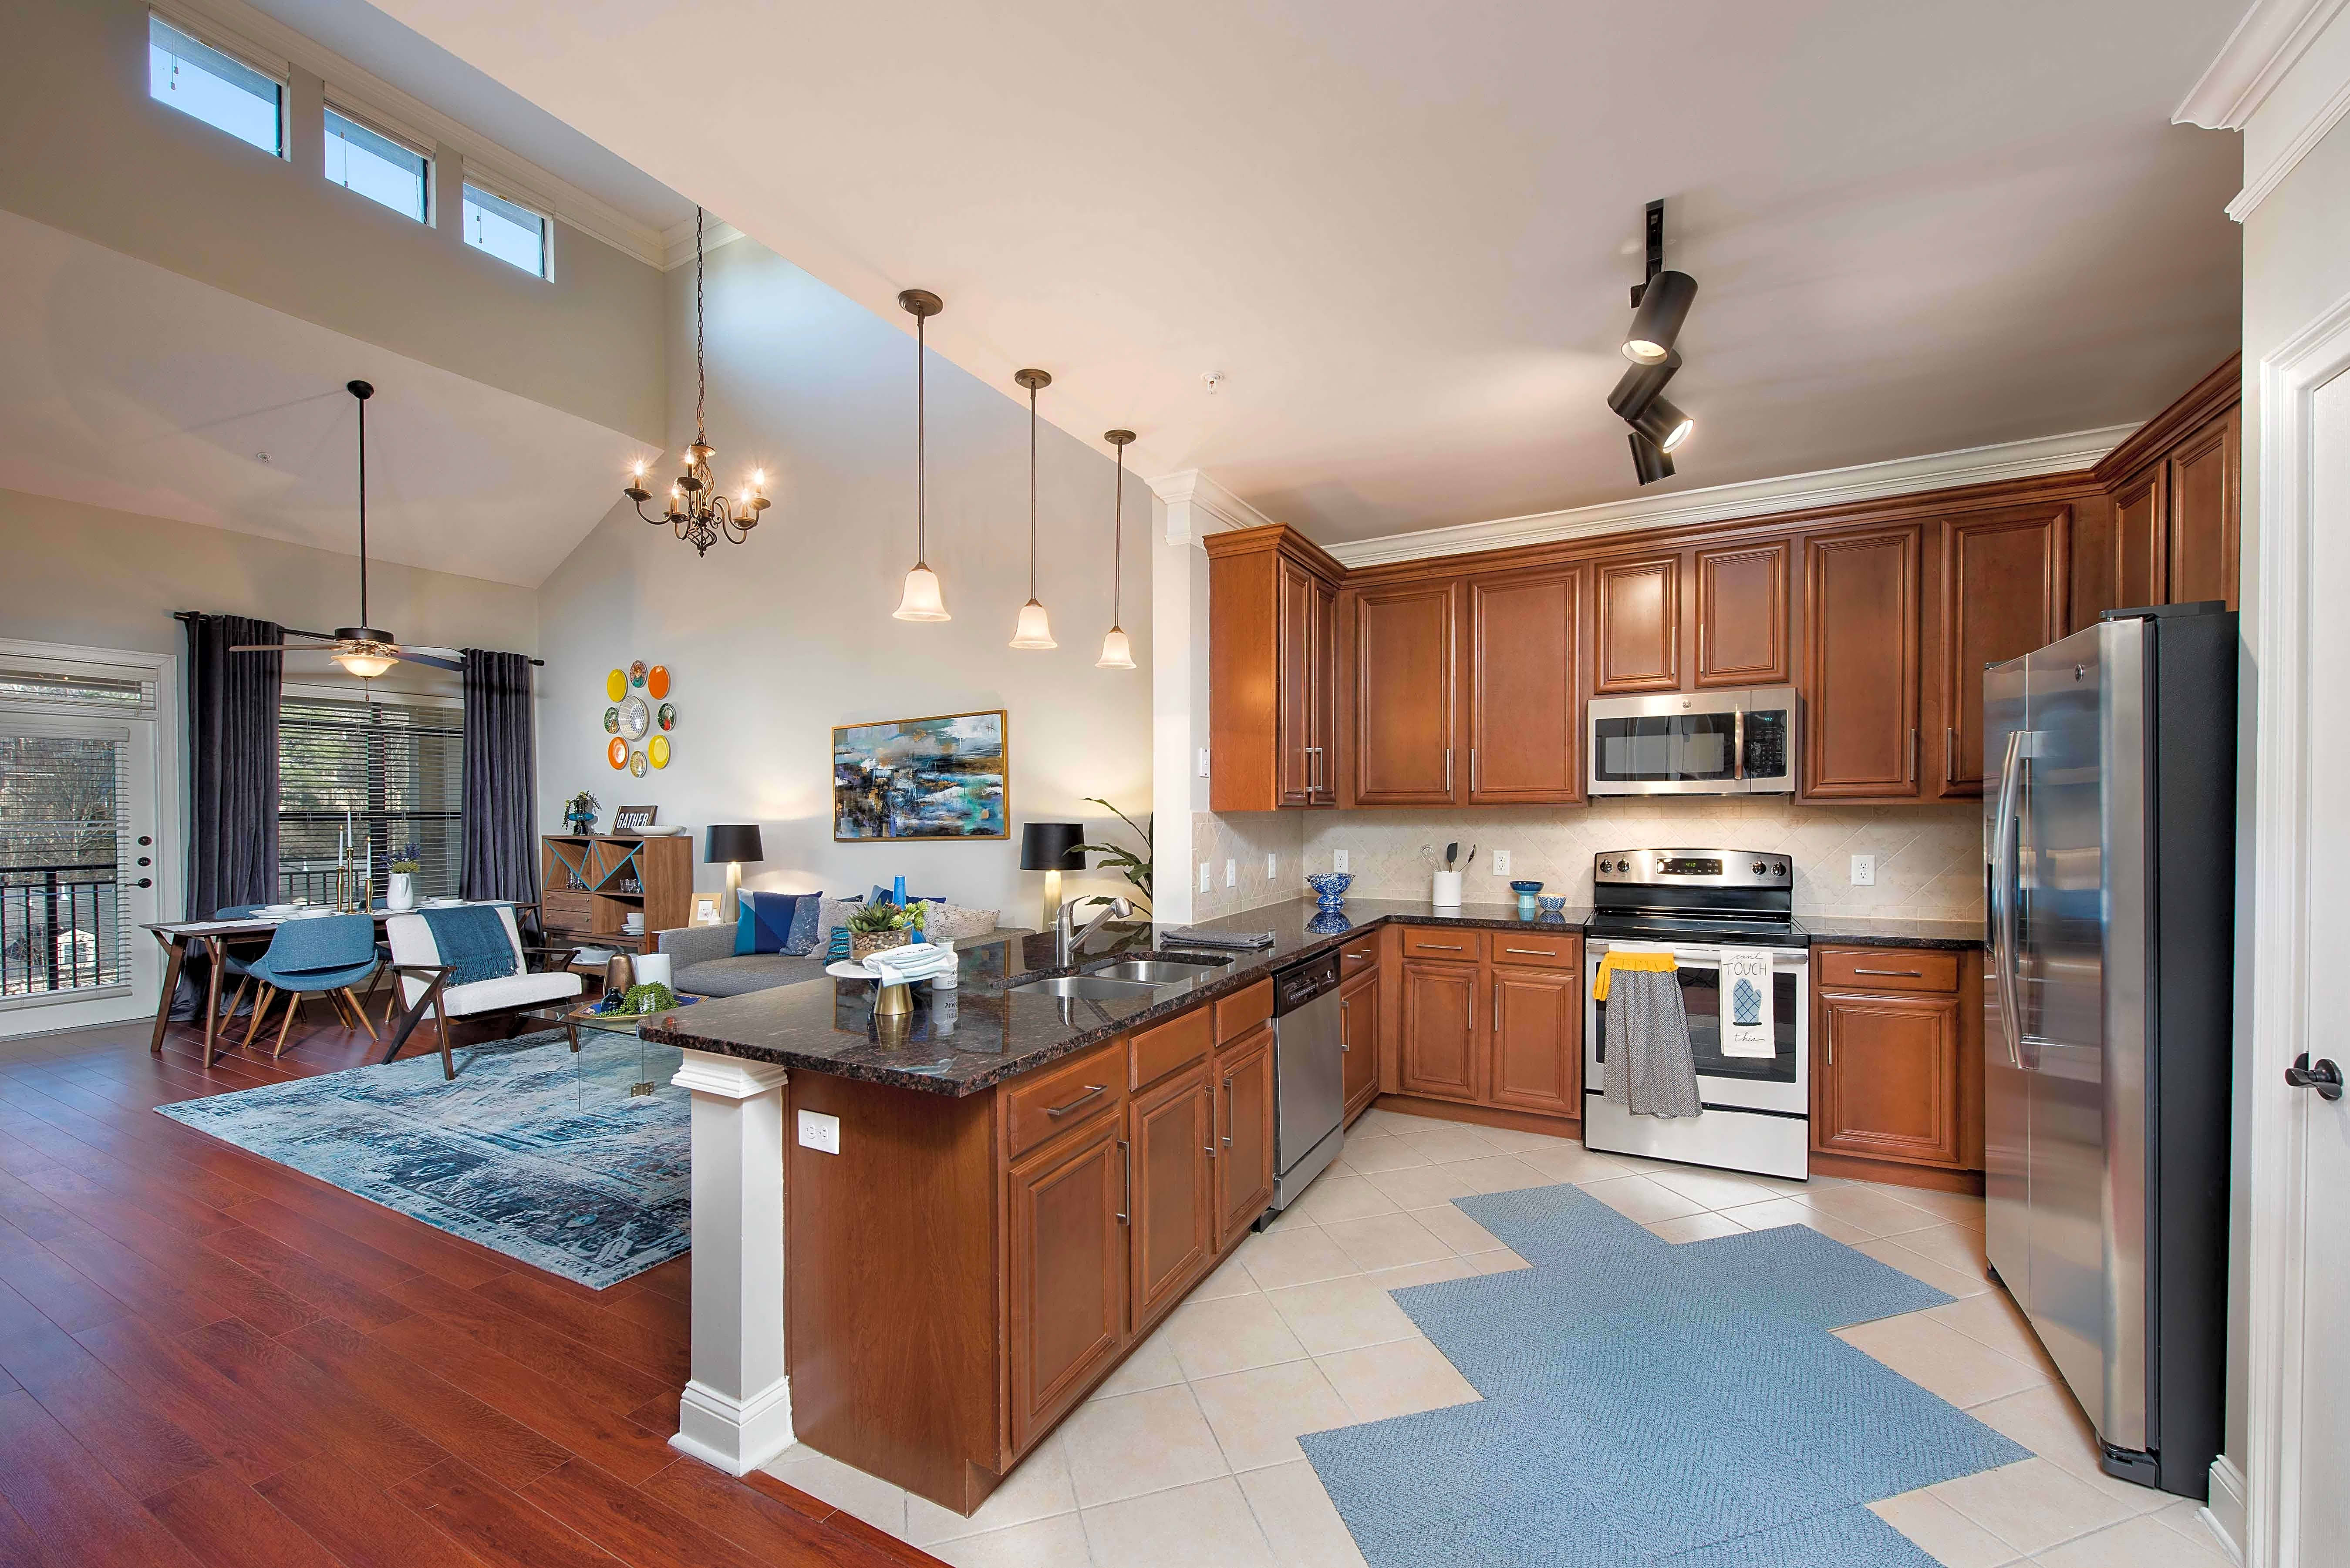 in rent rentals of aspire perimeter decatur luxury avail north top apartments bedroom for p awesome ga atlanta